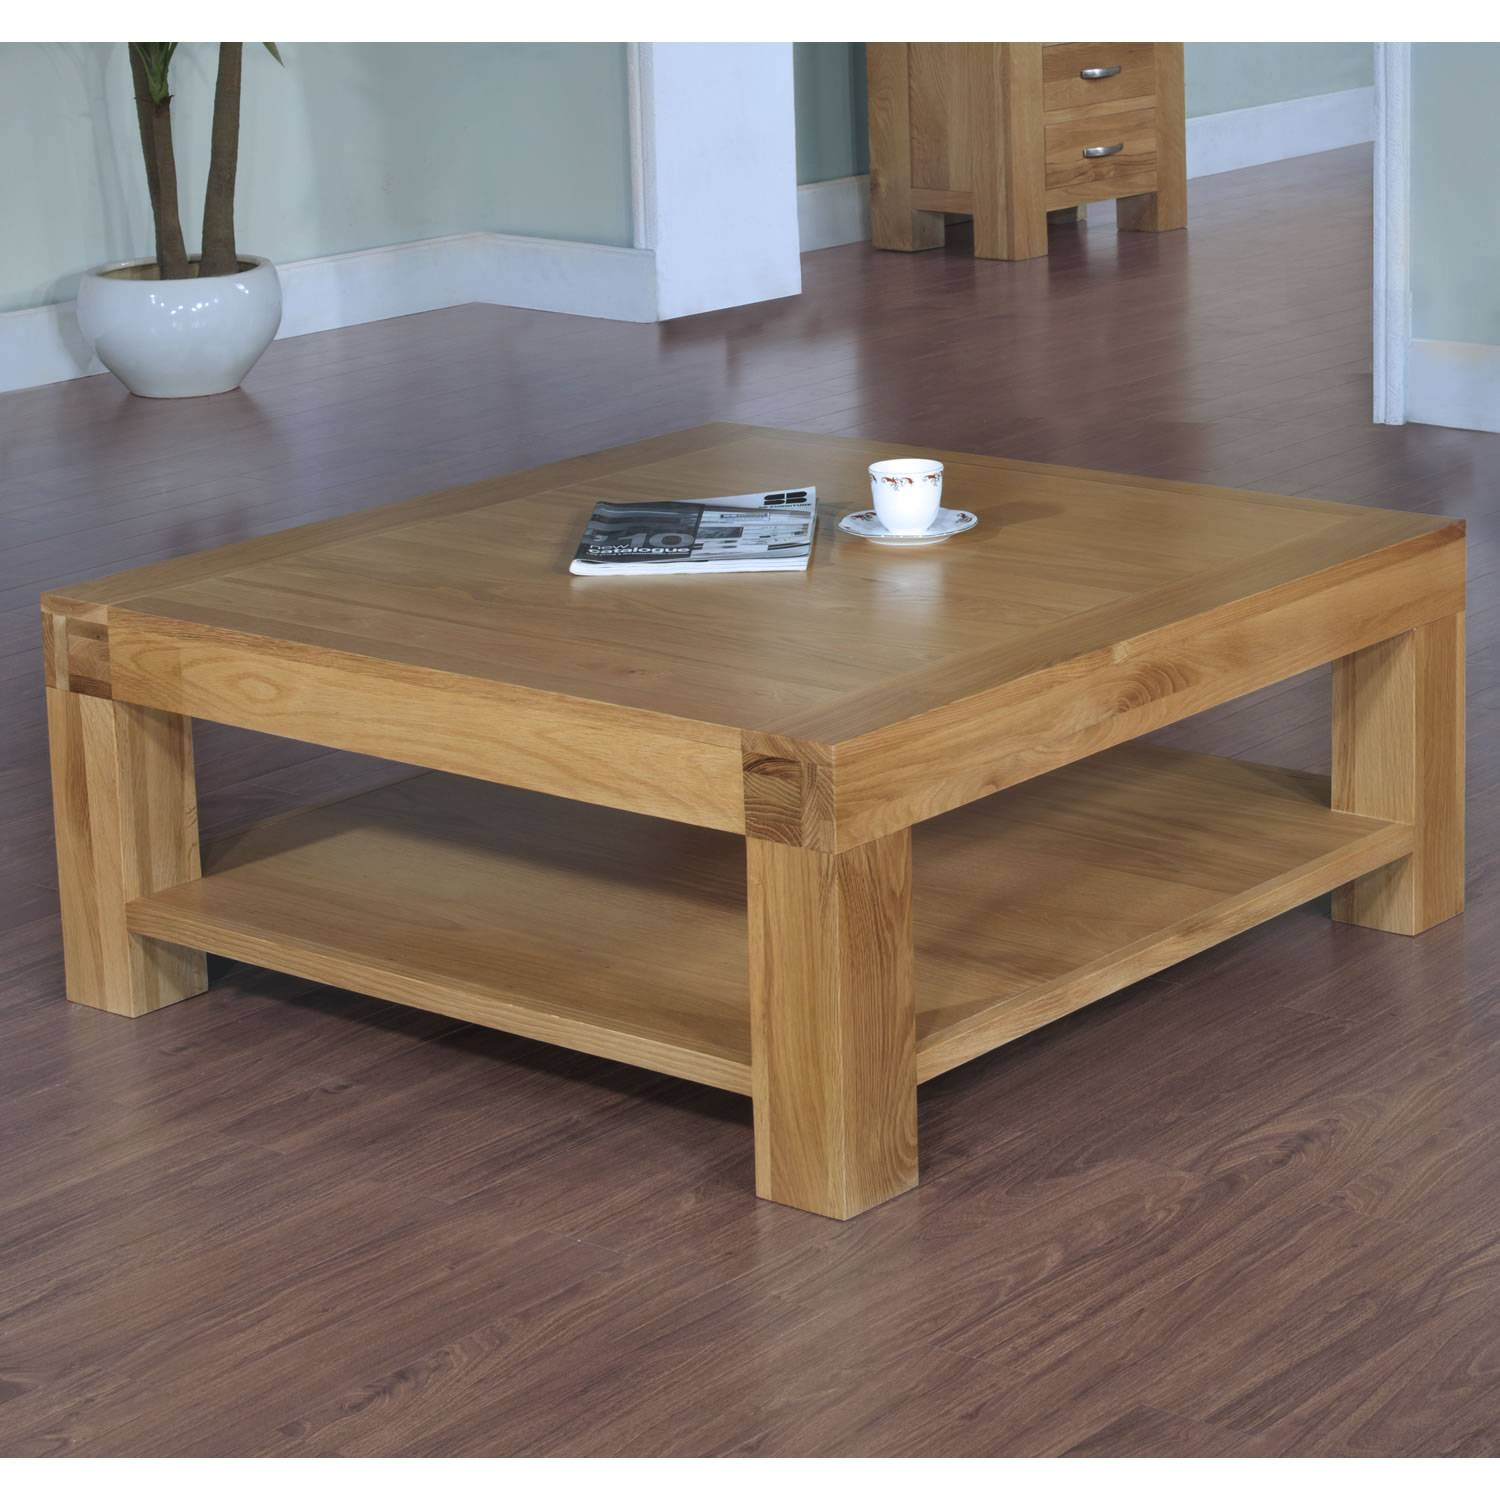 Orly Oak Square Coffee Table With Drawers | Coffee Tables Decoration with regard to Square Coffee Table Storages (Image 22 of 30)